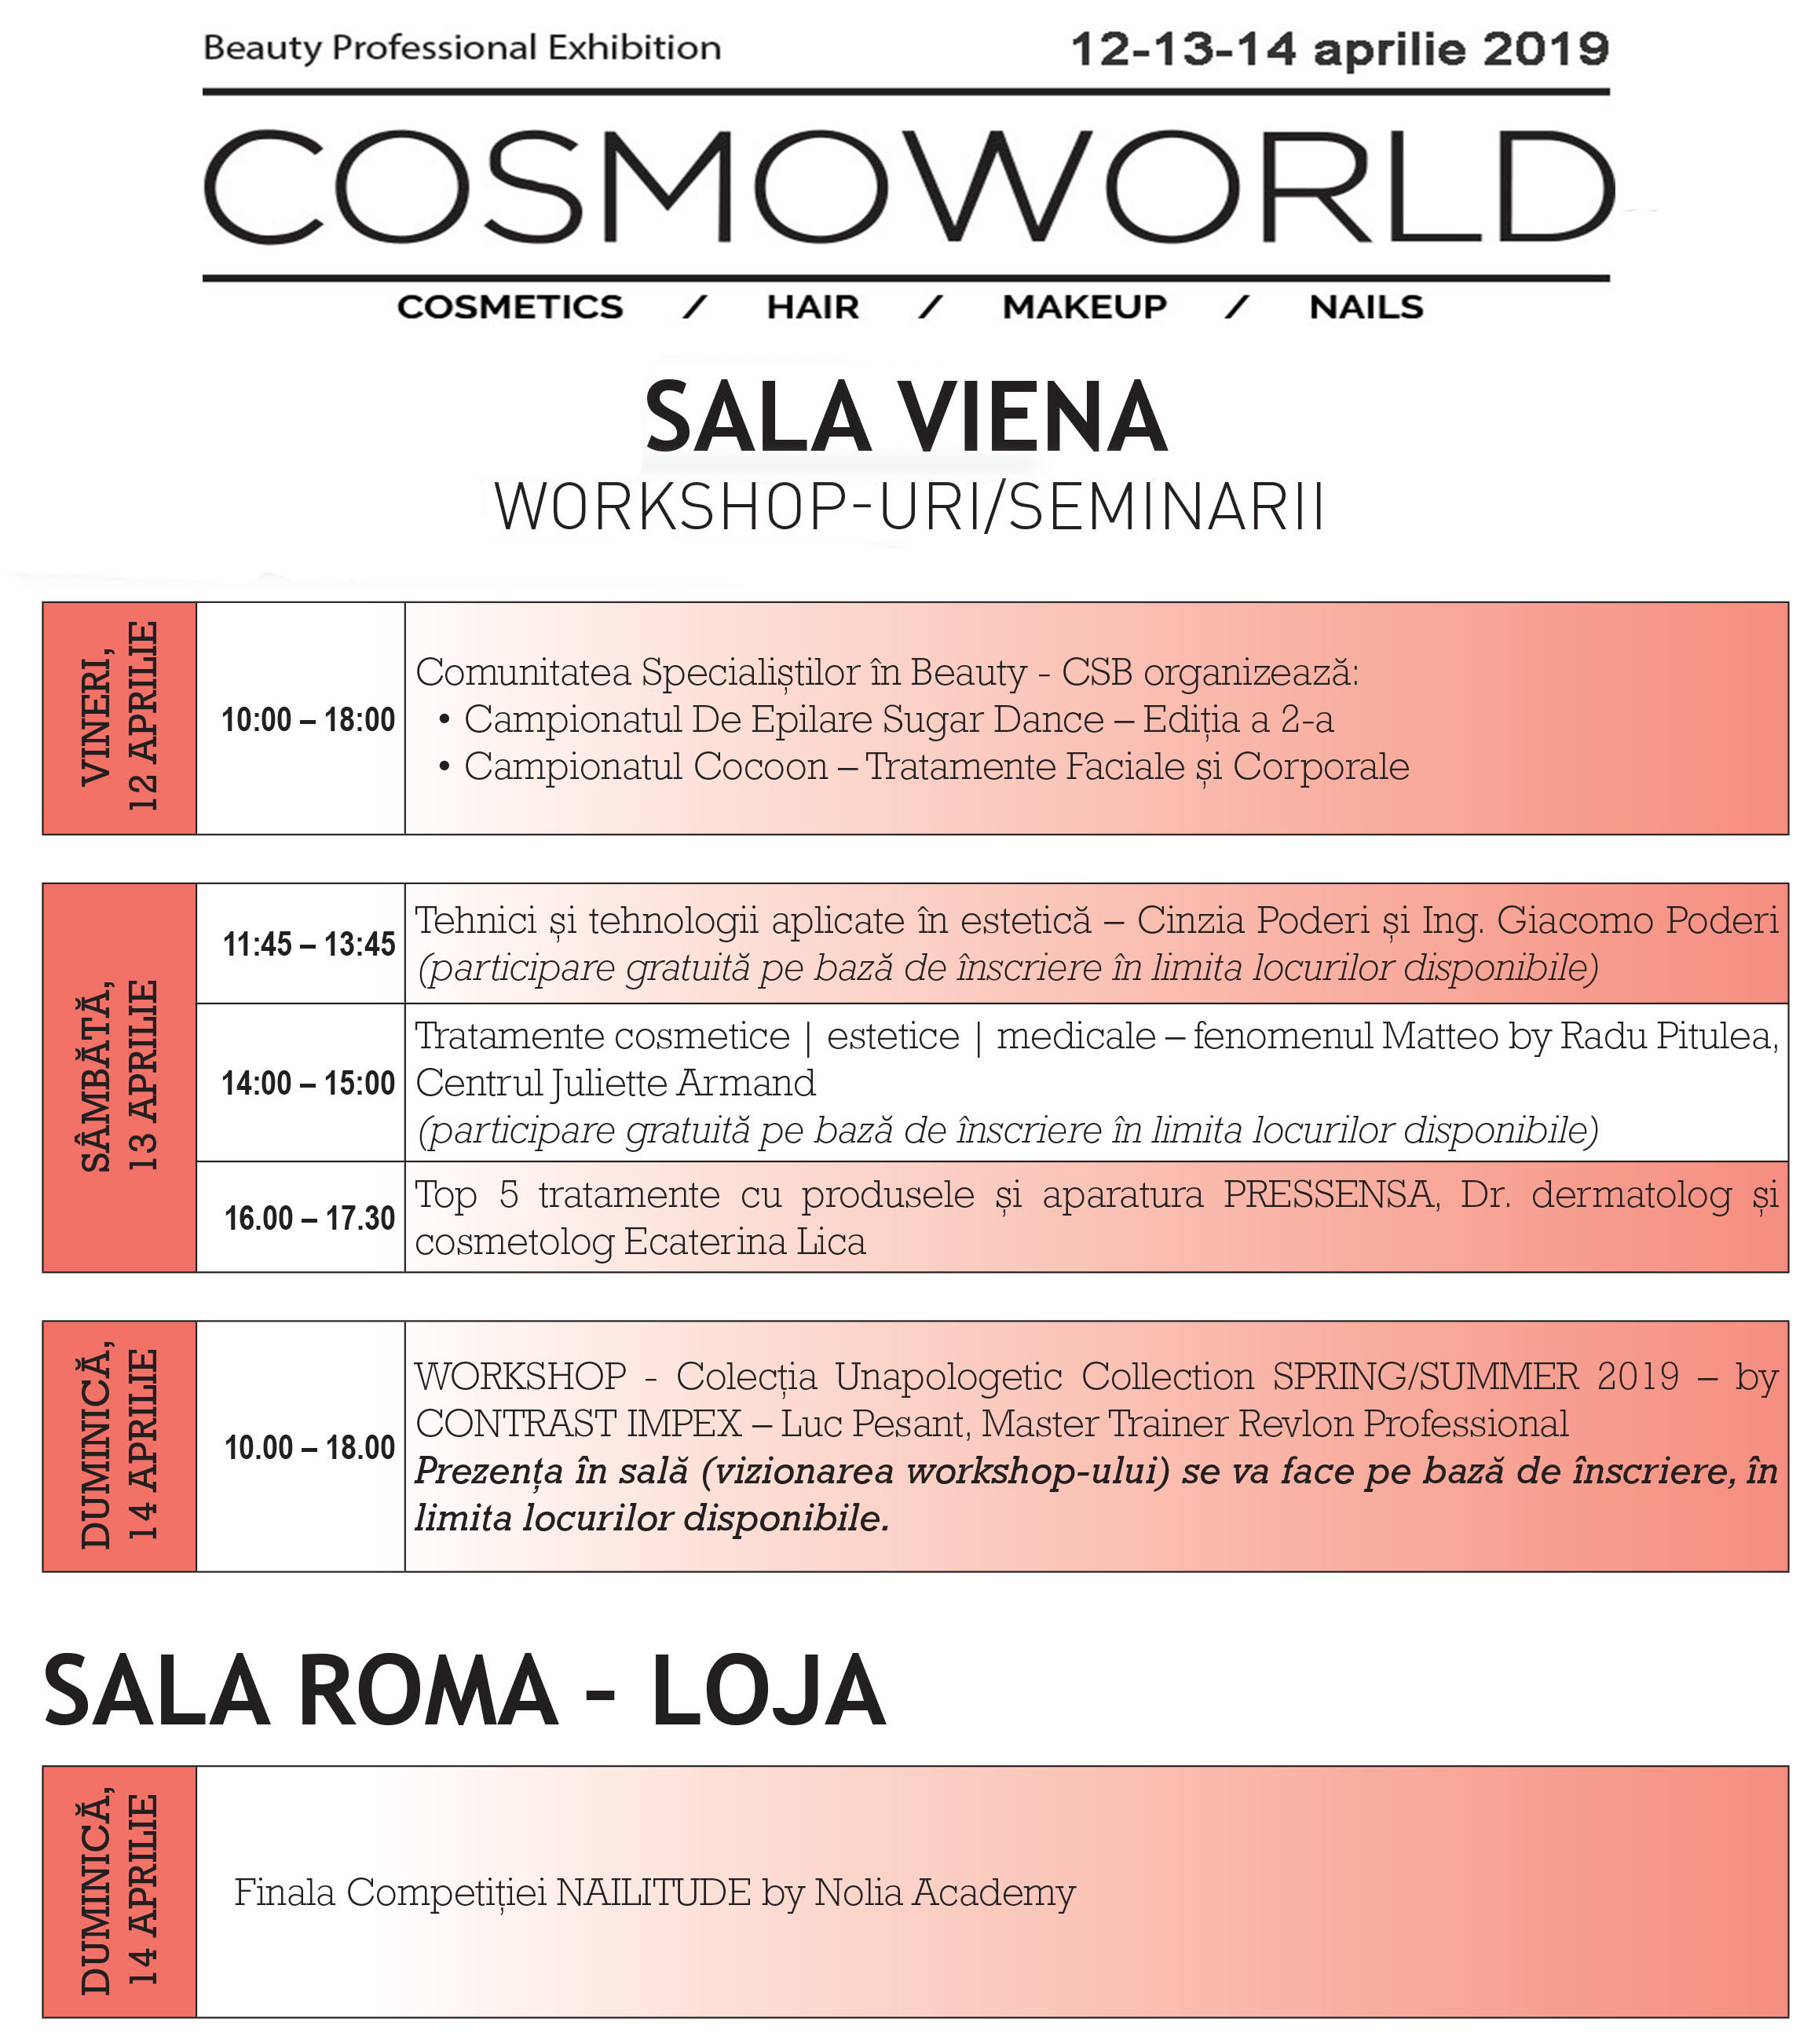 Program sala Viena cosmoworld 2019